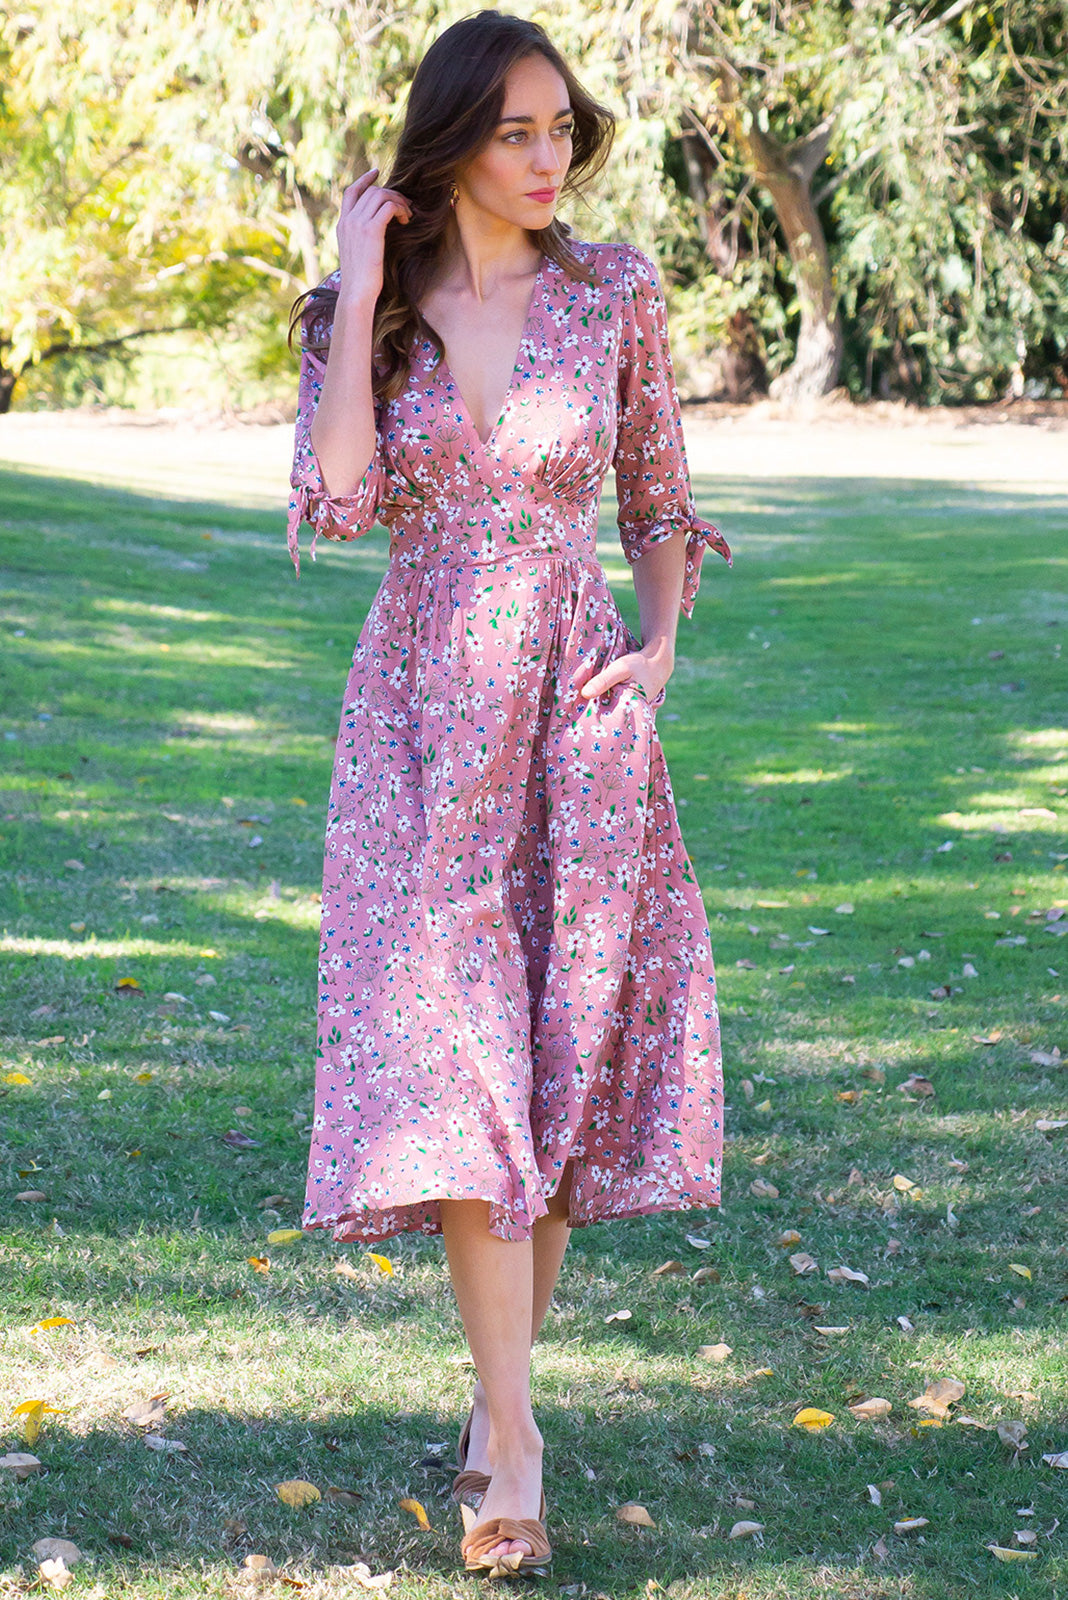 Henrietta Antique Rose Dress is a classic & feminine style featuring elasticised back waist, 3/4 sleeves with cuff ties, side pockets, dusky petal pink base with ditzy floral print of white and blue in woven 100% rayon.